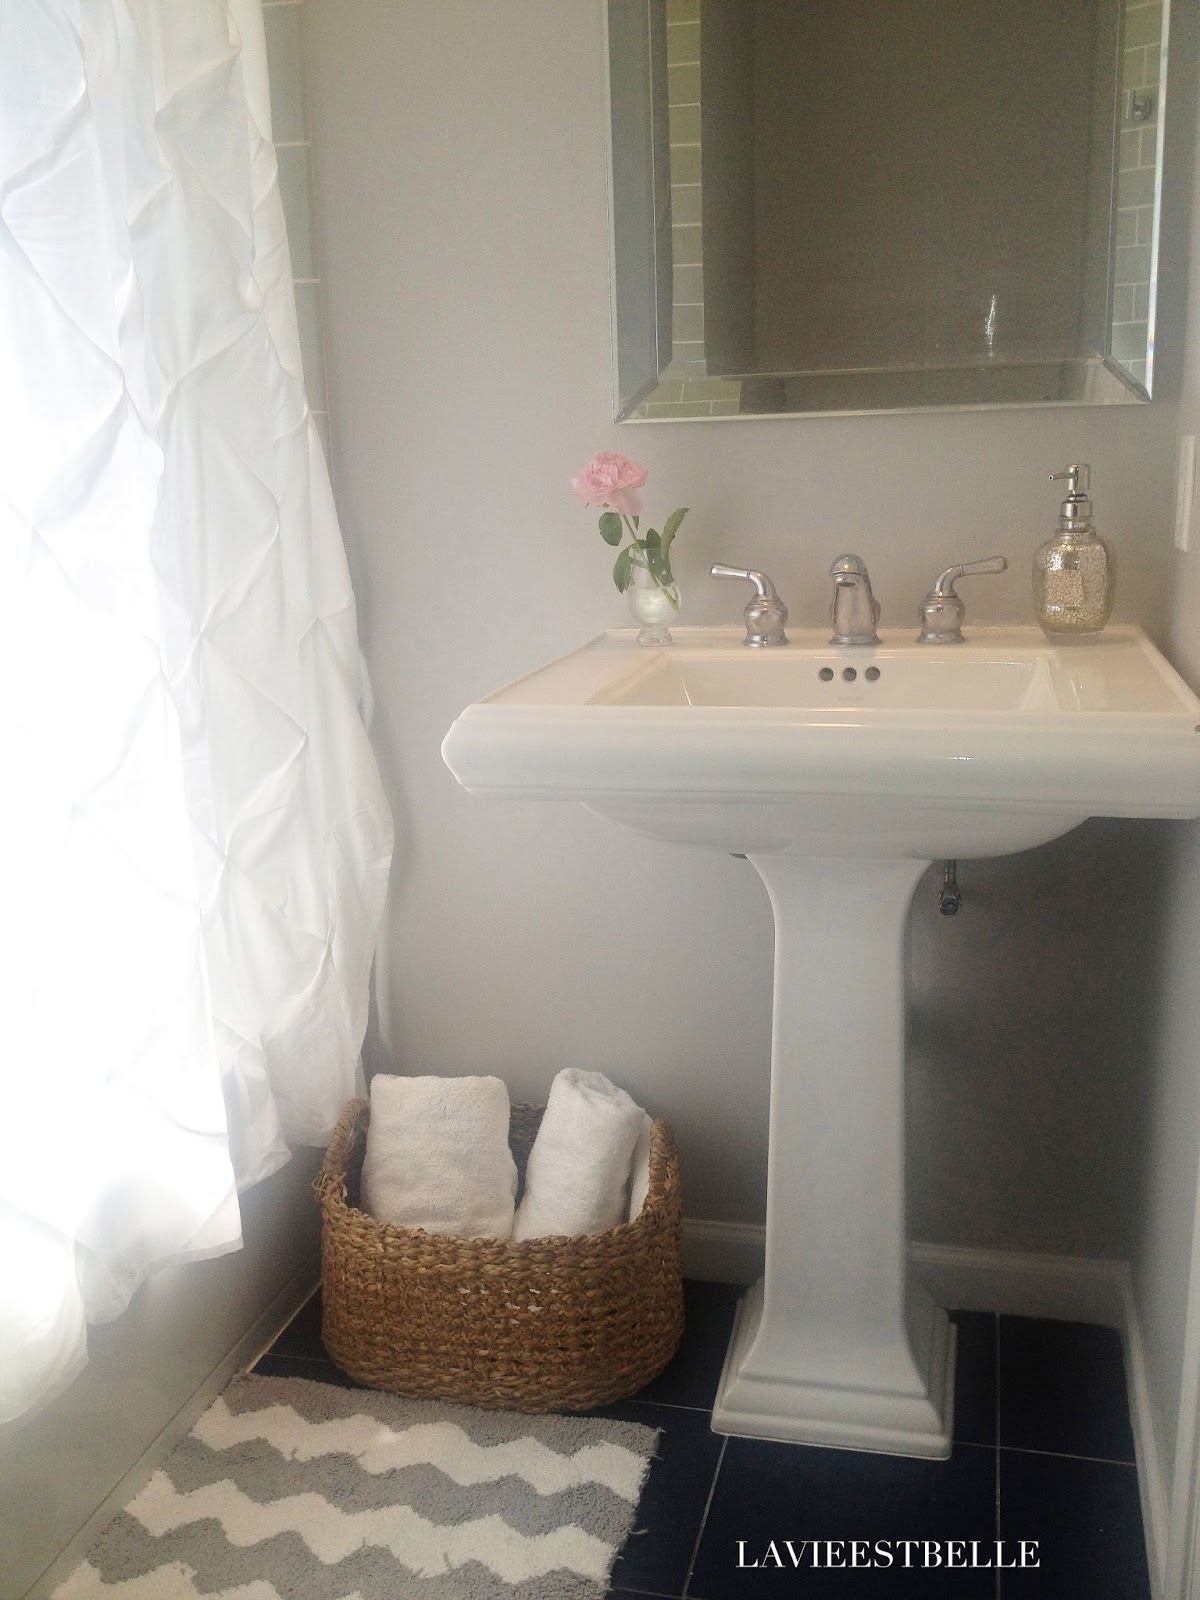 I Painted The Bathroom Light French Gray By Sherwin Williams And With A Few Accessories From Target Homegoods Put On Finishing Touches